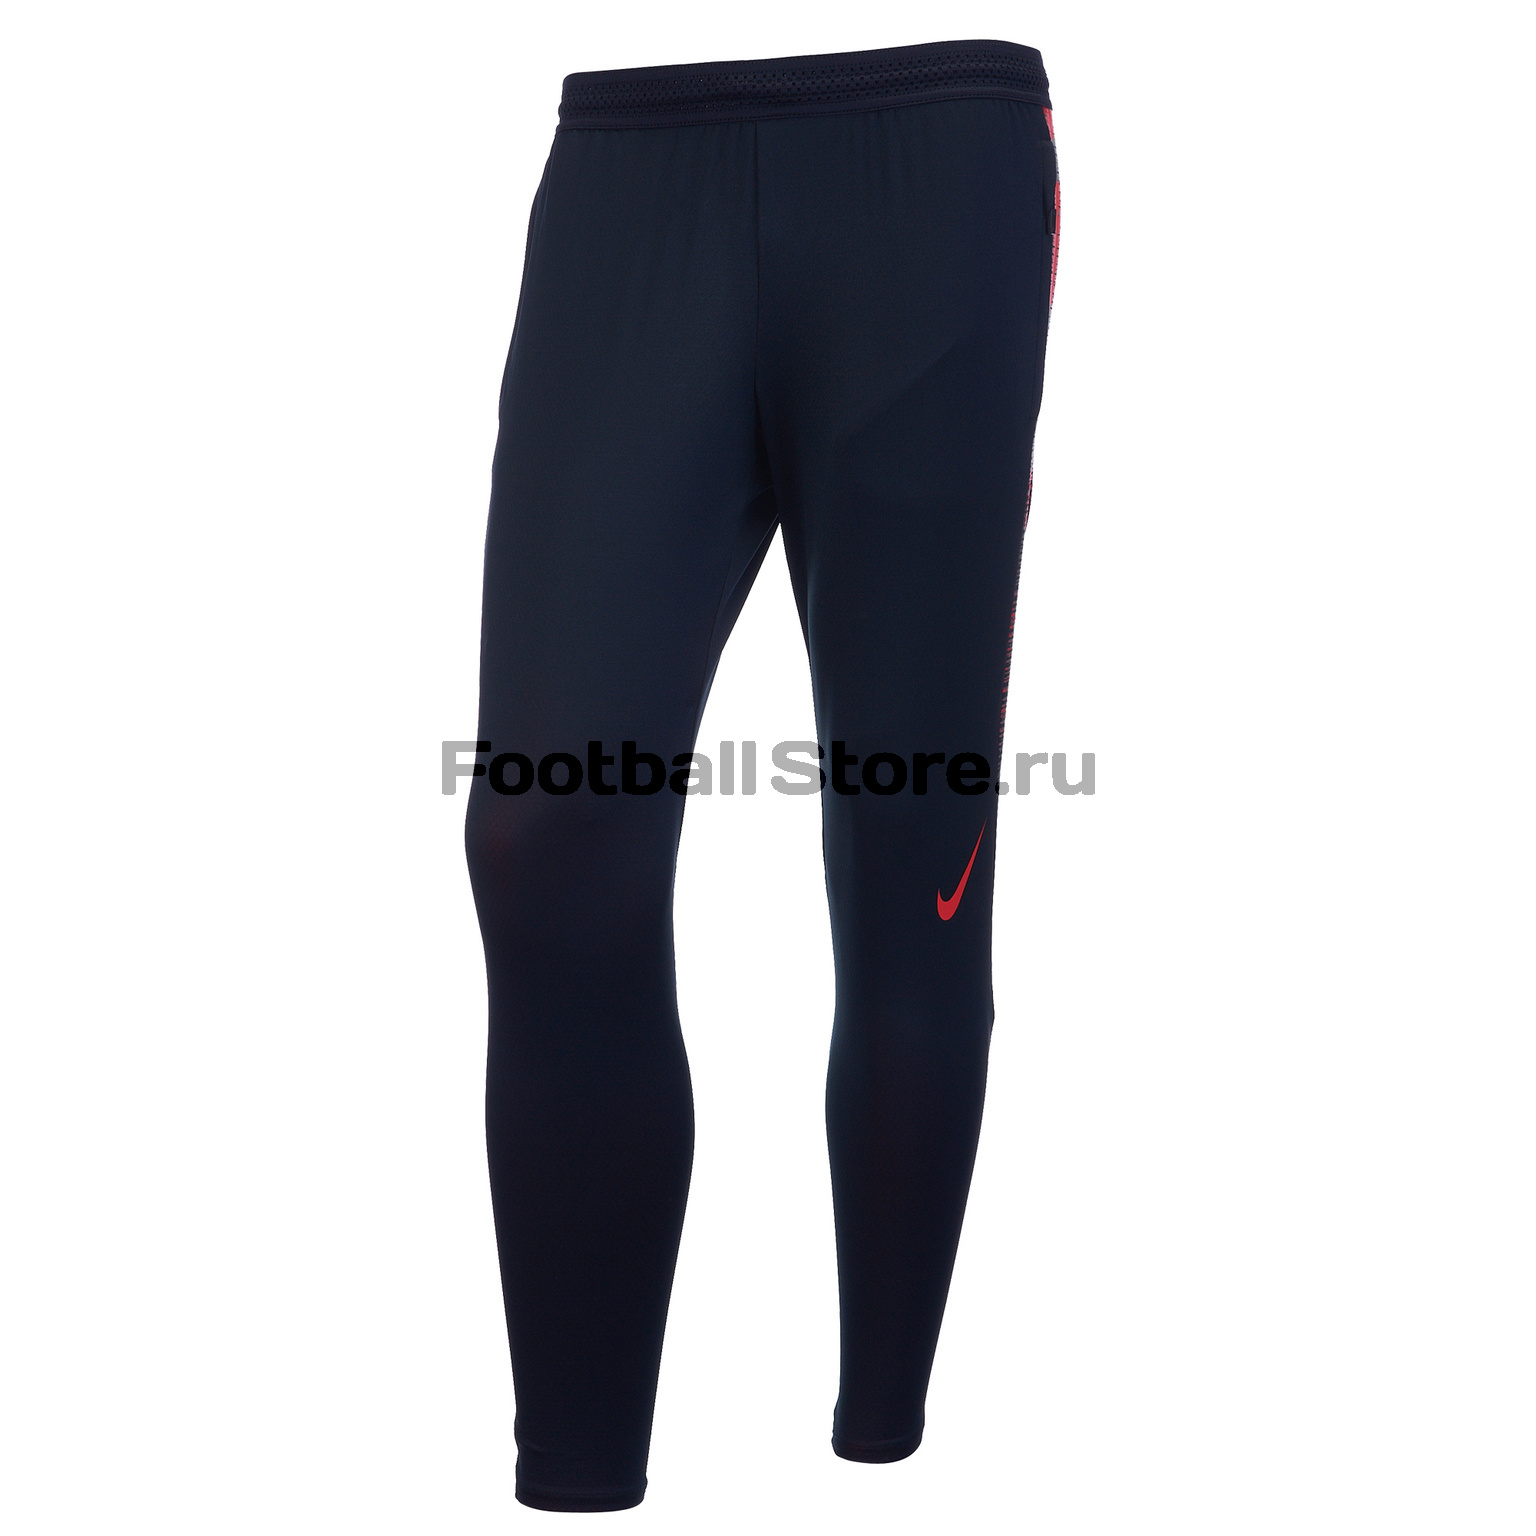 Брюки тренировочные Nike Strike Flex Football Pants 902586-022 nike nike football x logo